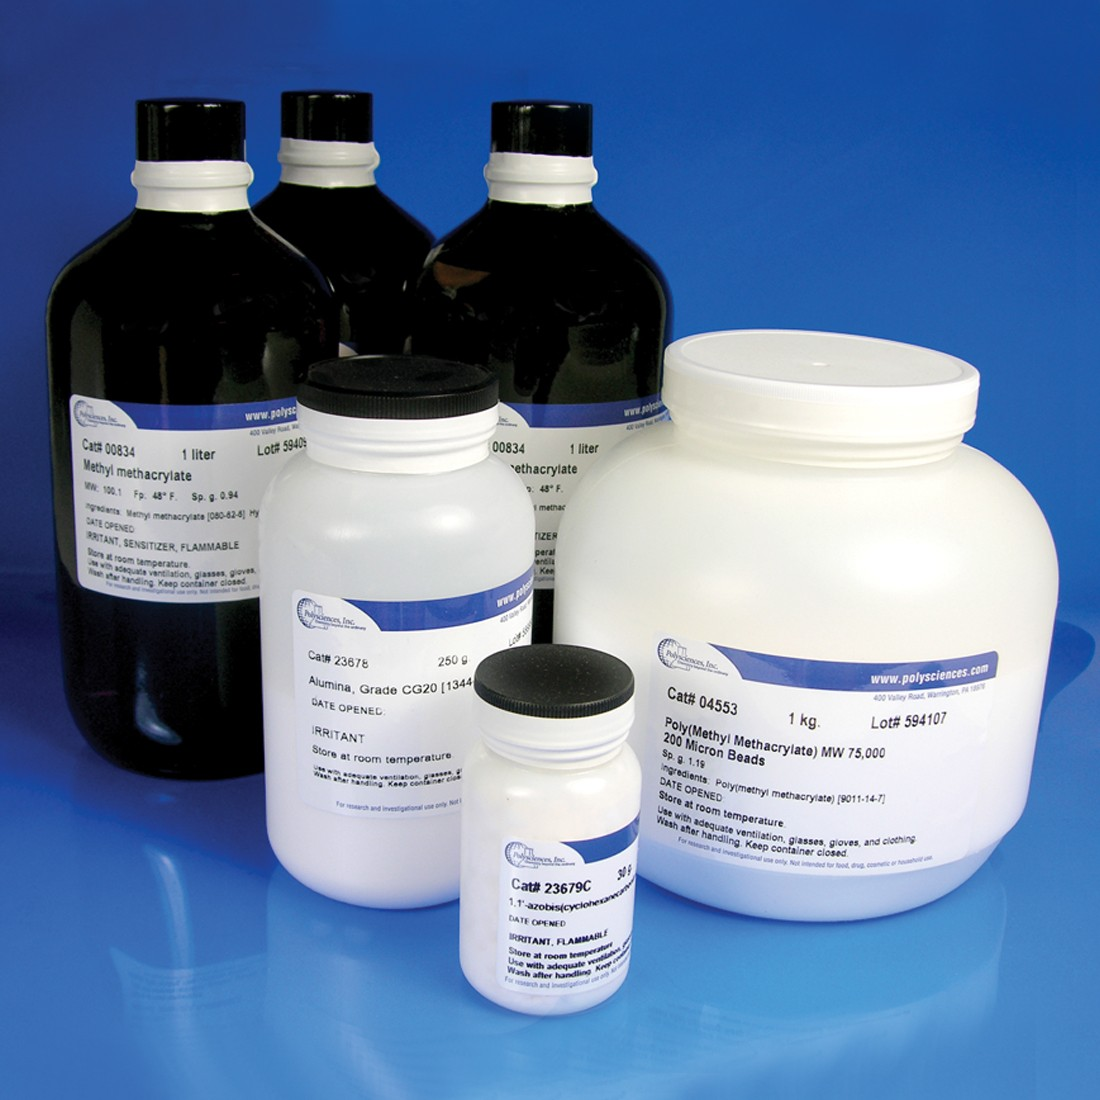 Methyl Methacrylate Embedding and Casting Kit